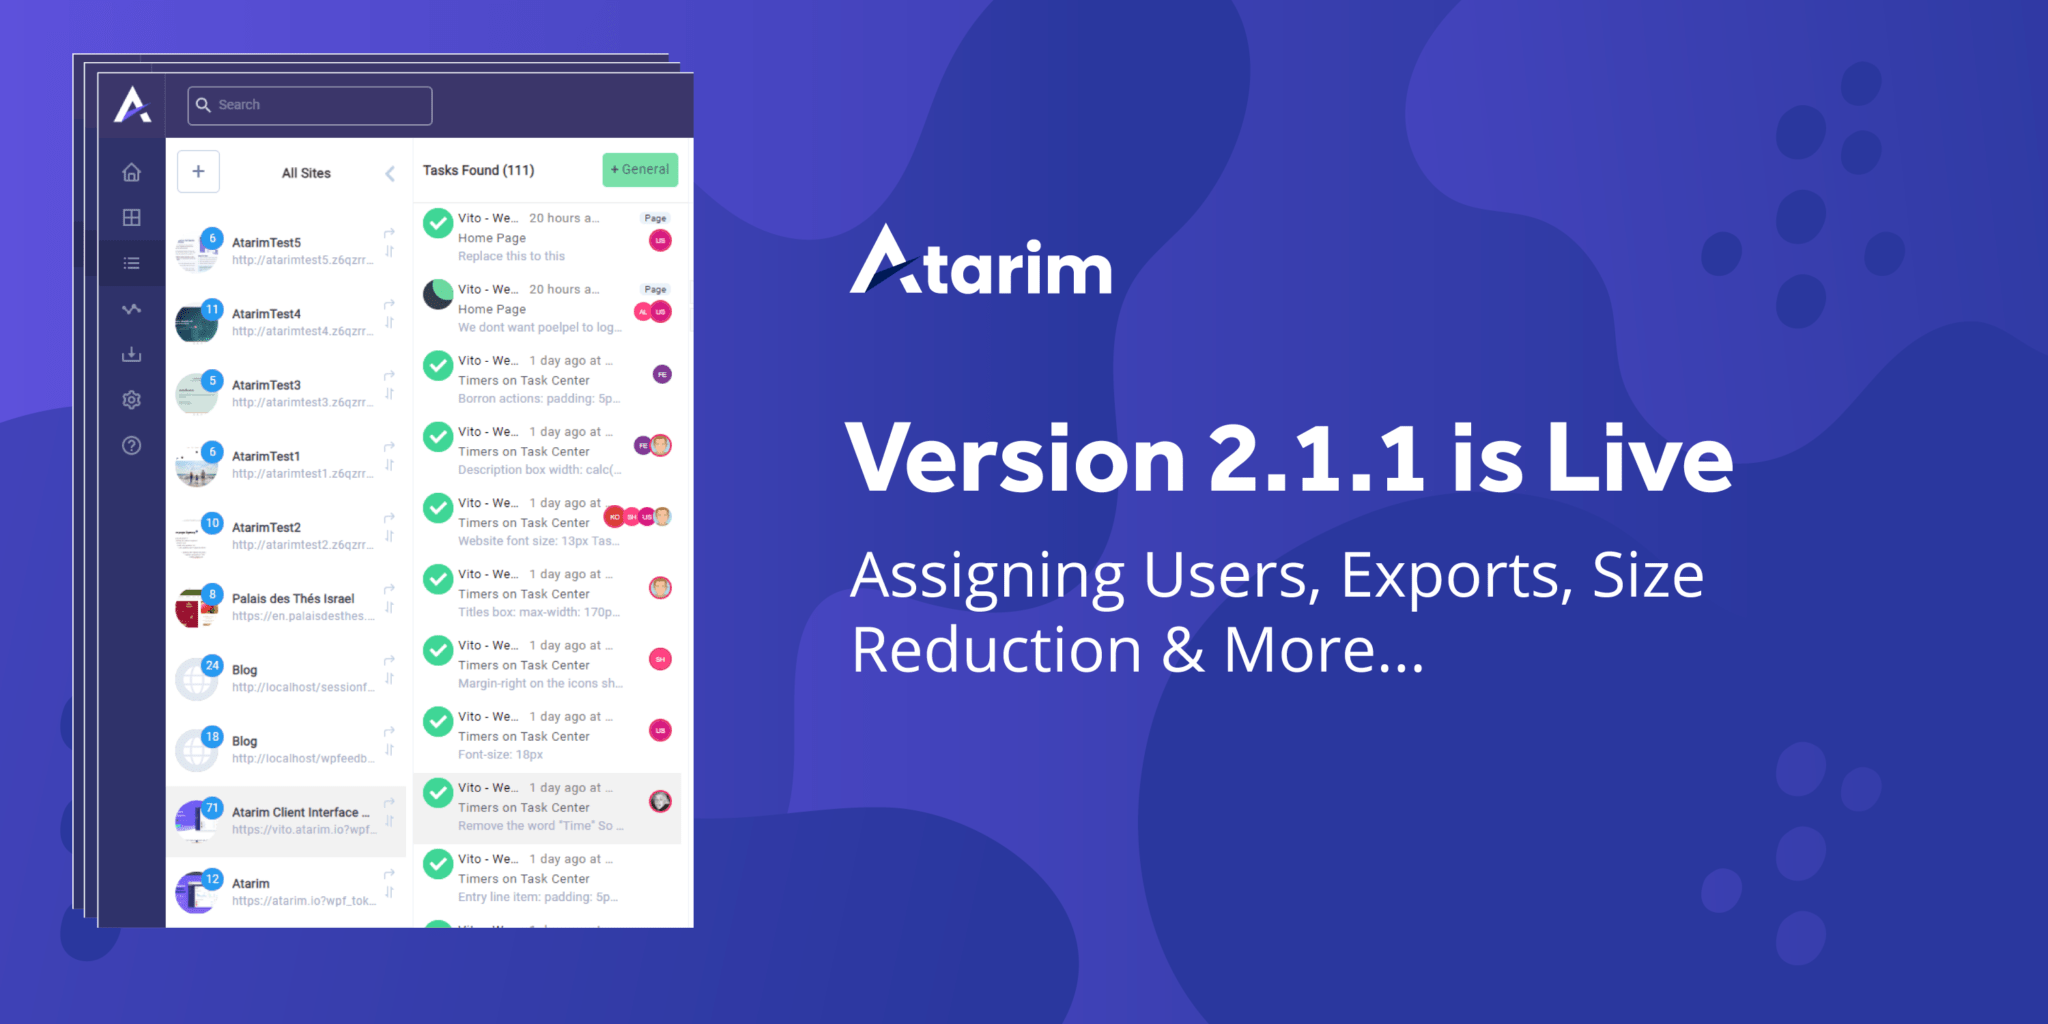 Ver 2.1.1 - Assigning Users, Exports, Size Reduction & More... 2